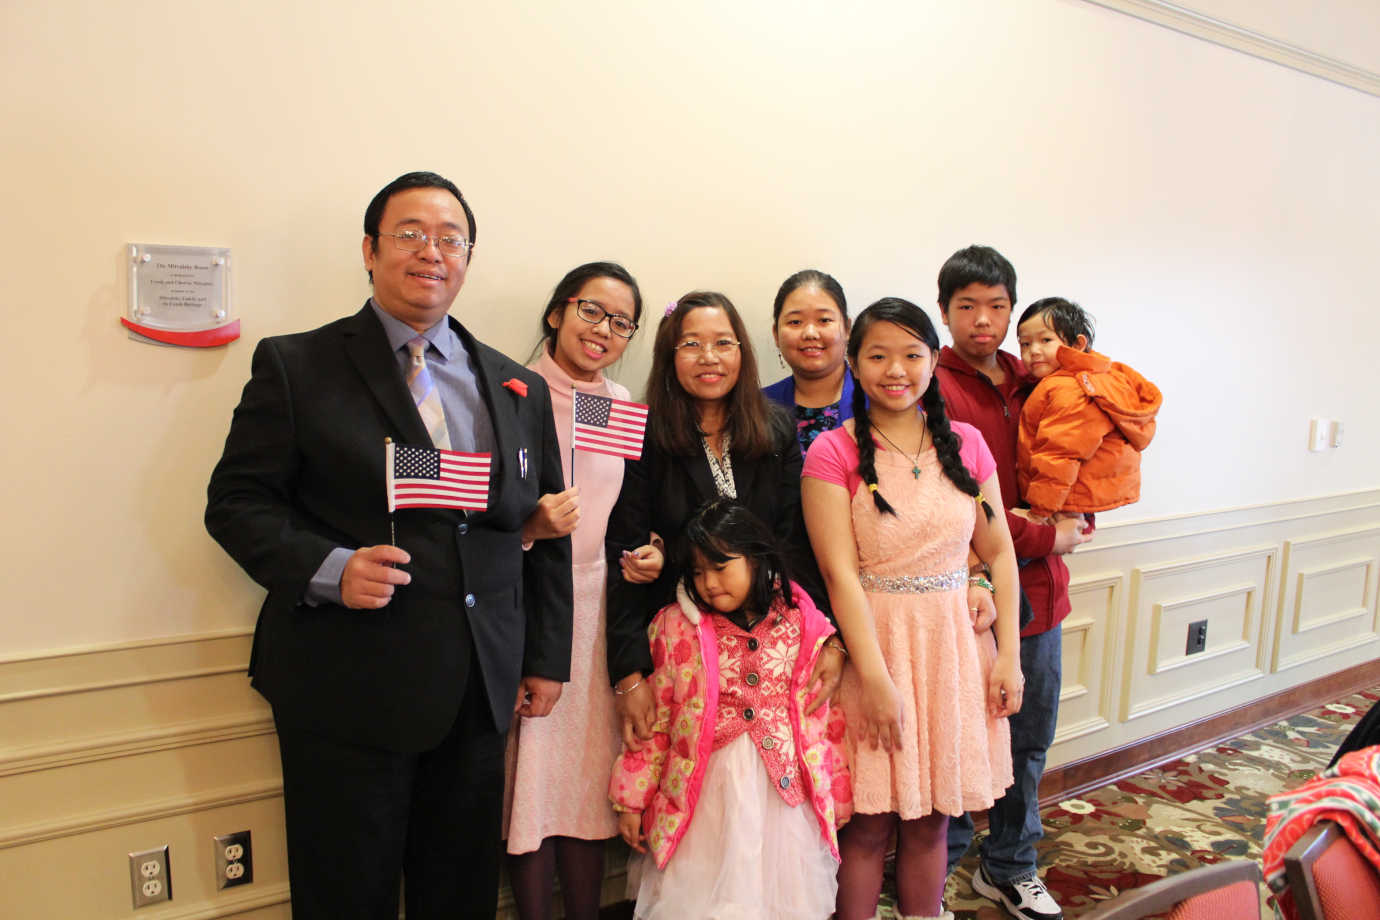 NCSML hosts Cedar Rapids' ceremony for newly naturalized American citizens, forging connections with other immigrant communities. Photo courtesy of NCSML.